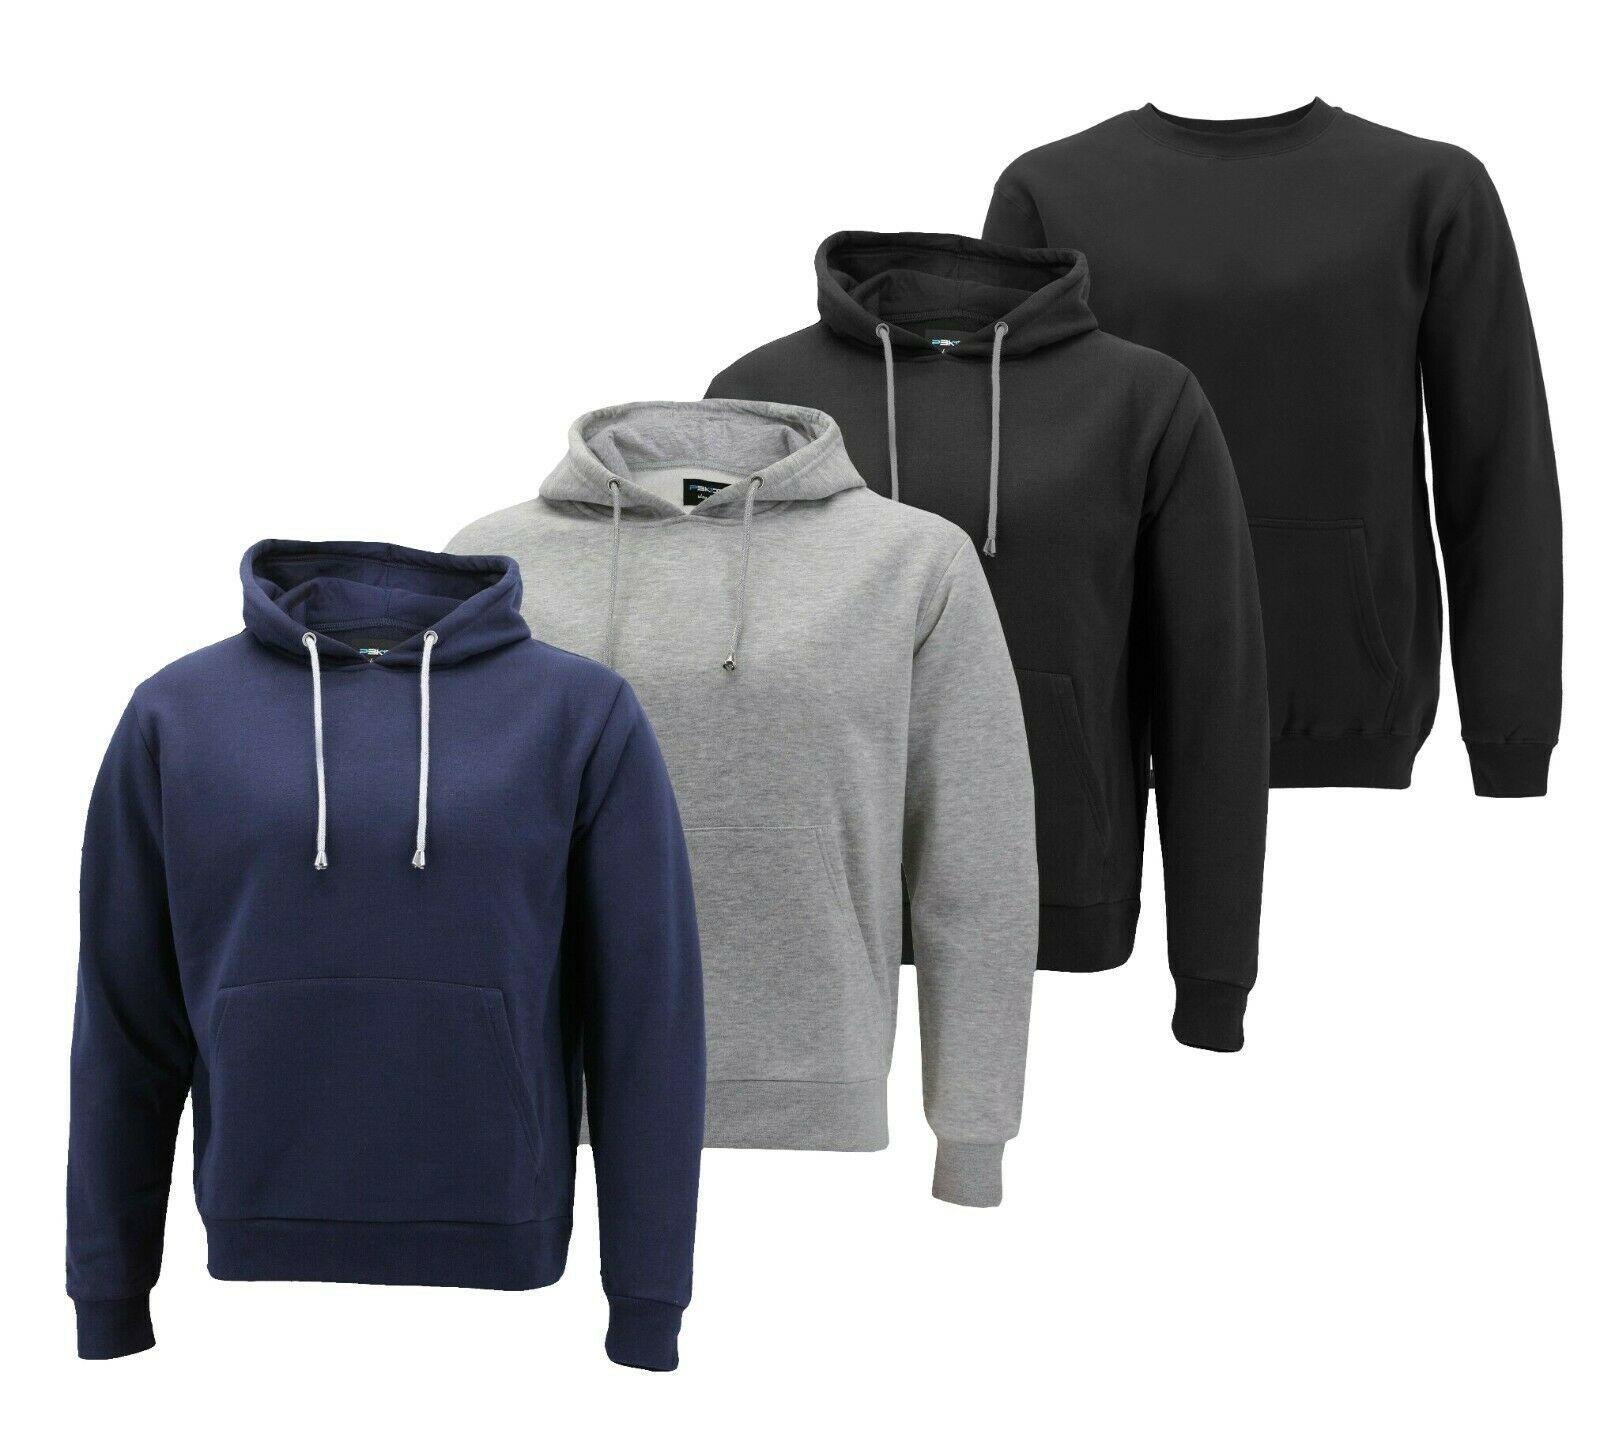 Men's Pullover Hoodie Warm Fleece Casual Sweater Athletic Sweatshirt Slim Fit